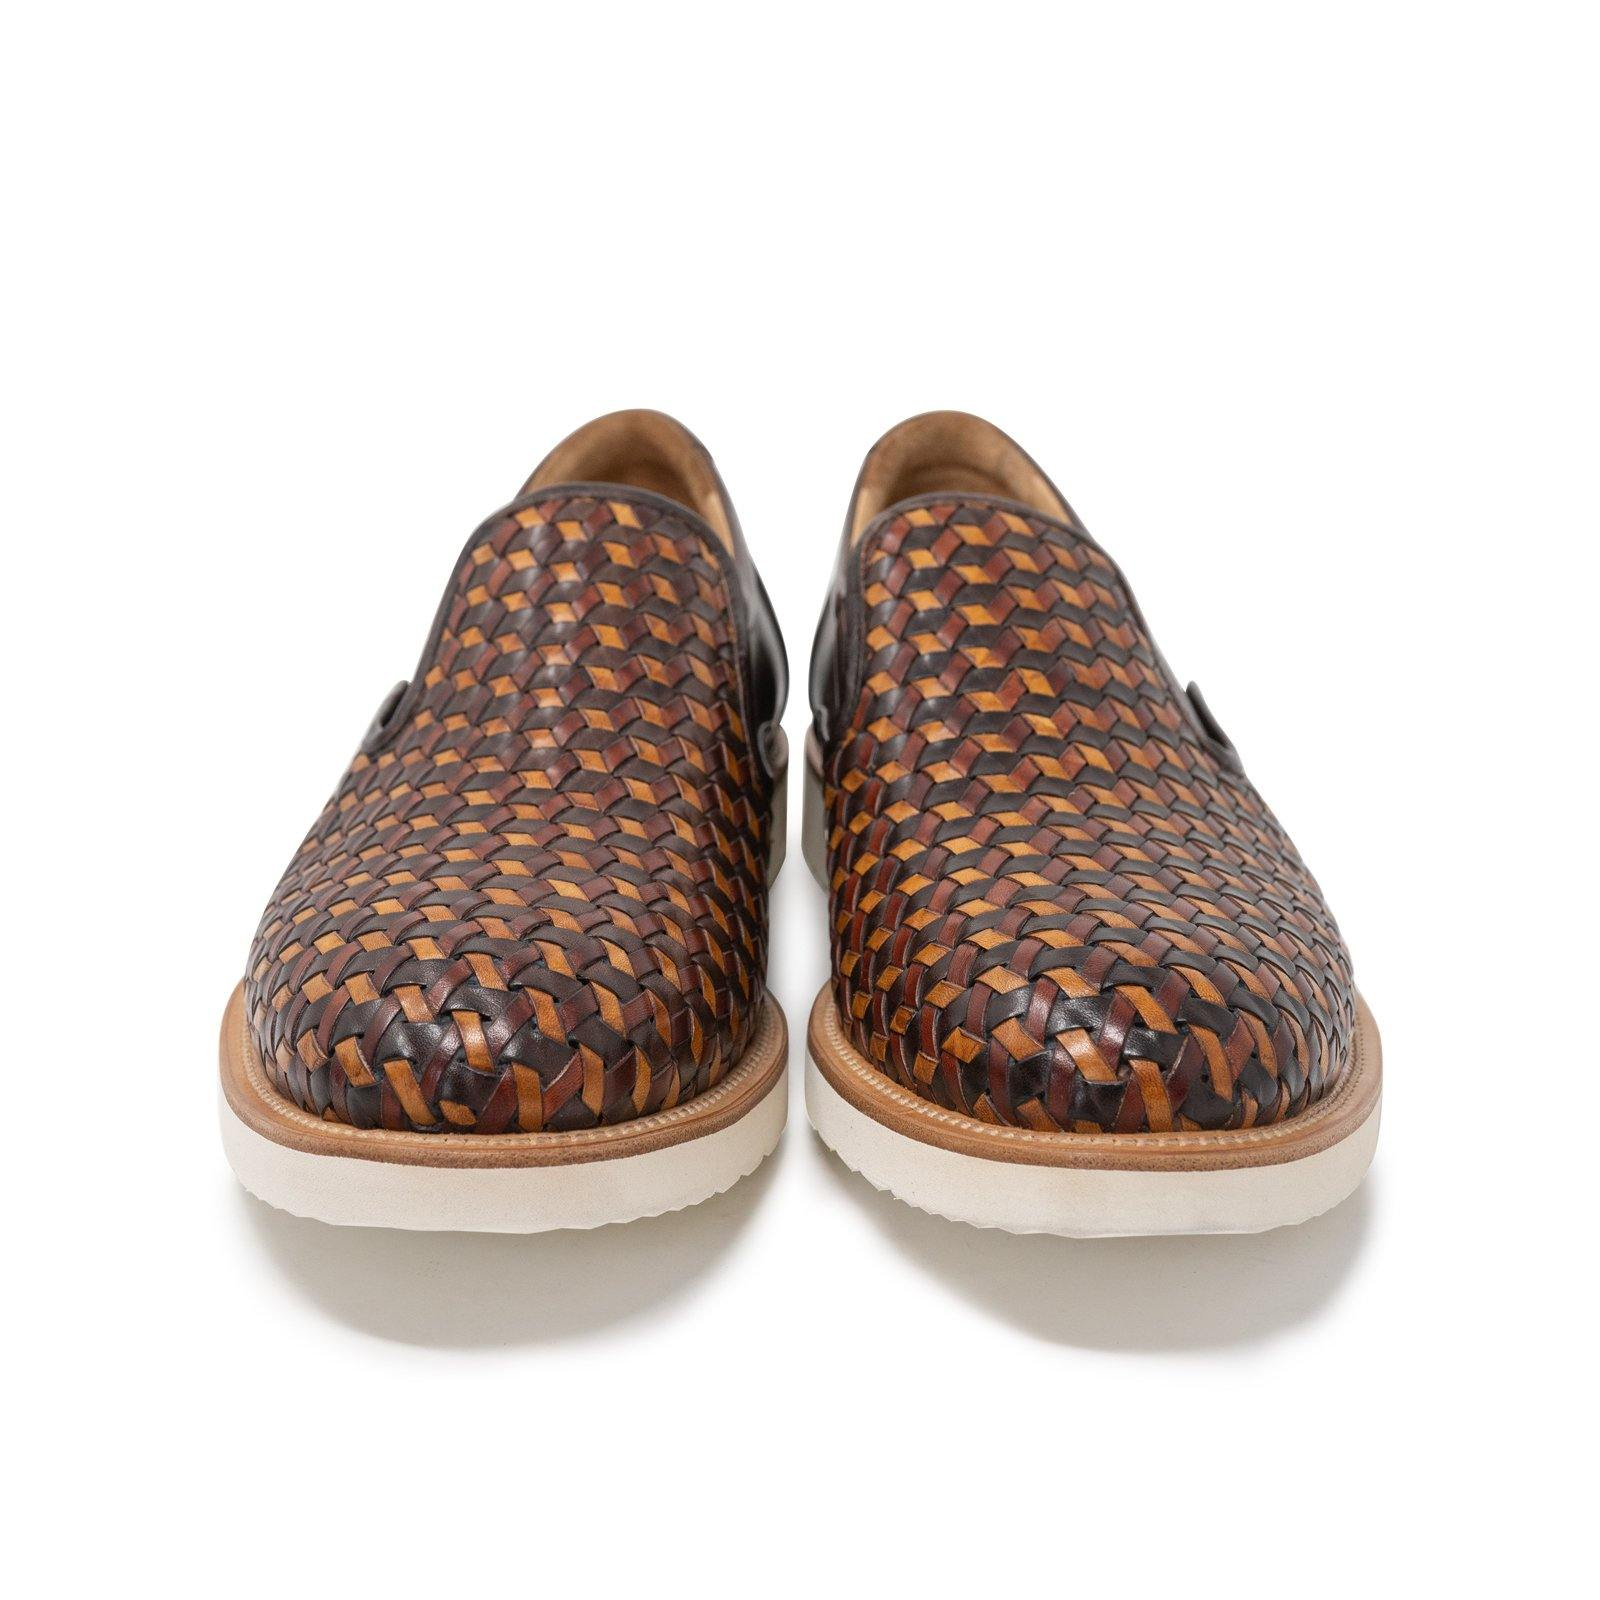 Men Slip On Leather Shoes in Cuoio and Brown